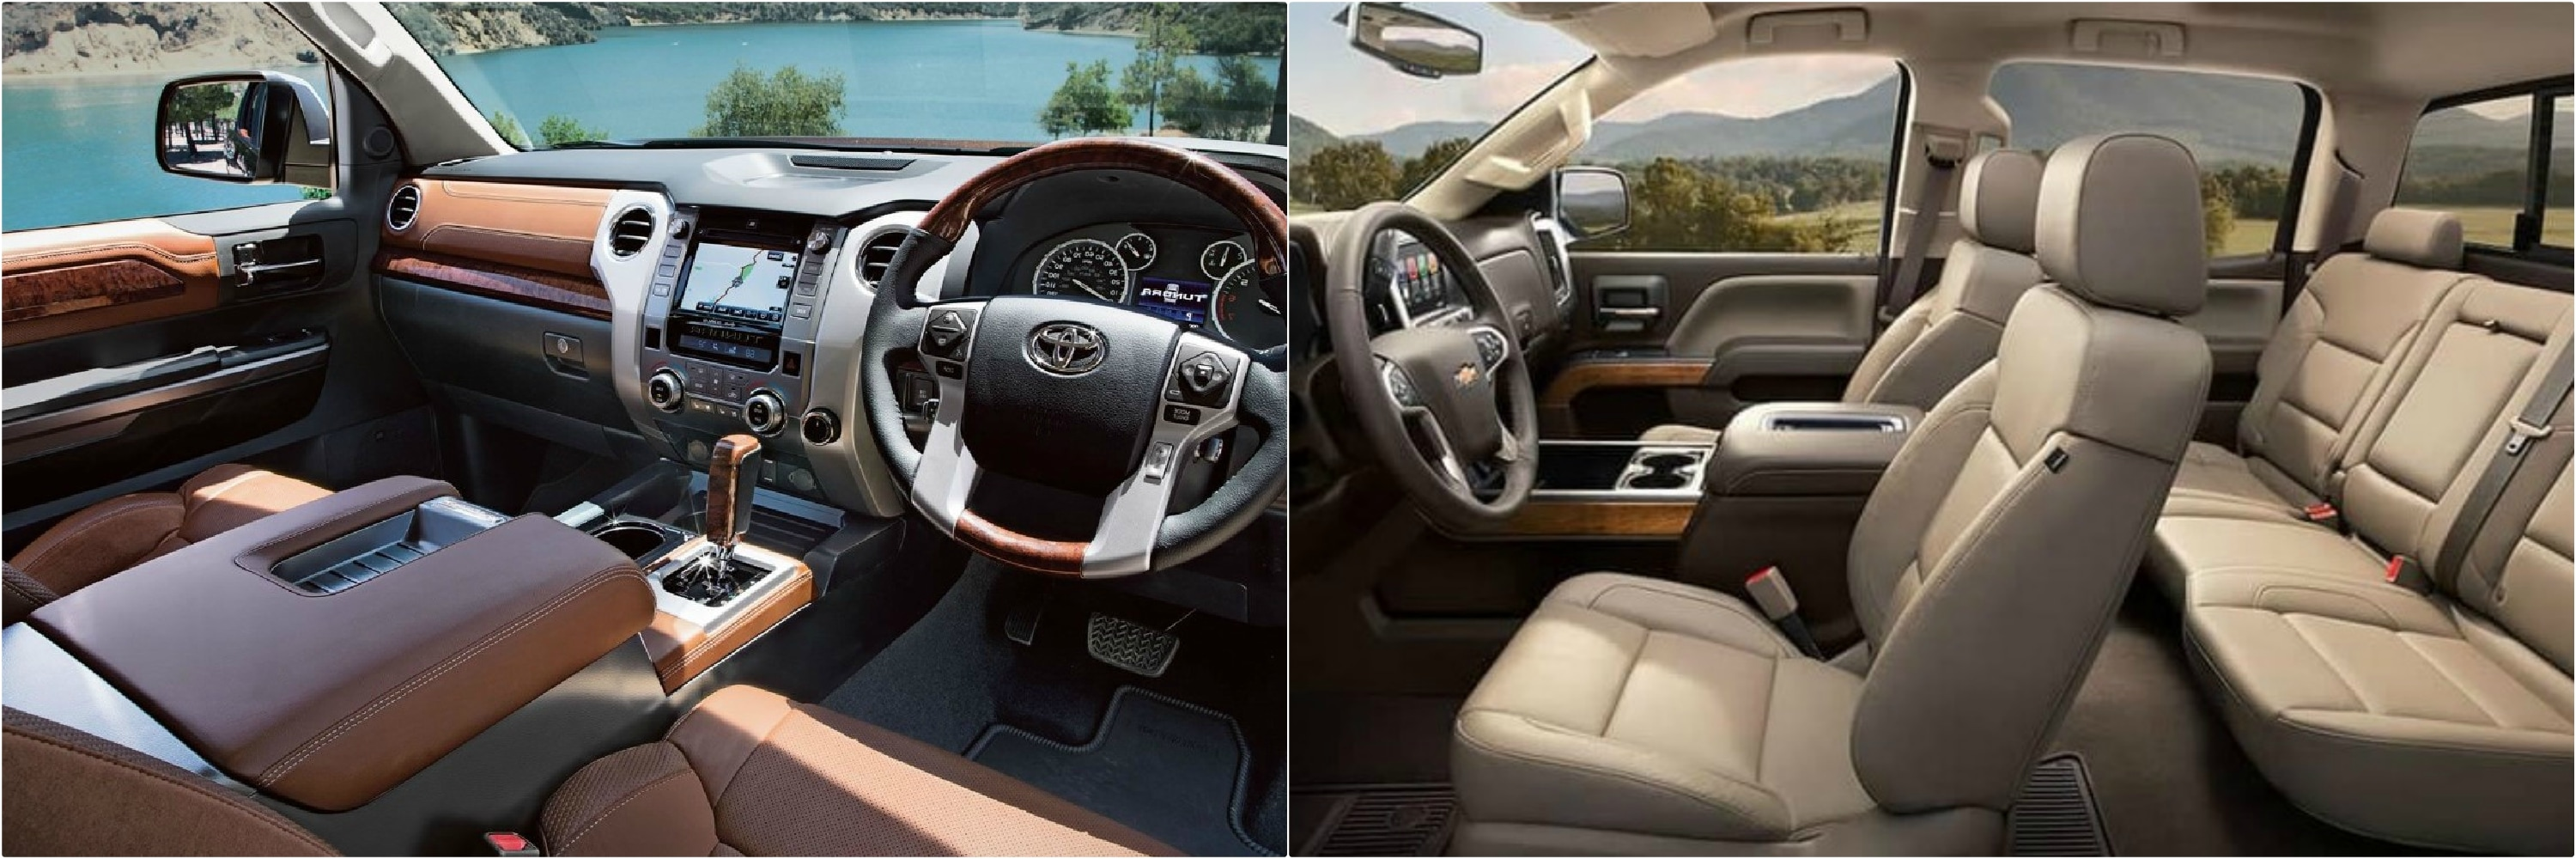 the interior comparison of a 2018 Toyota Tundra next to a Chevy Silverado